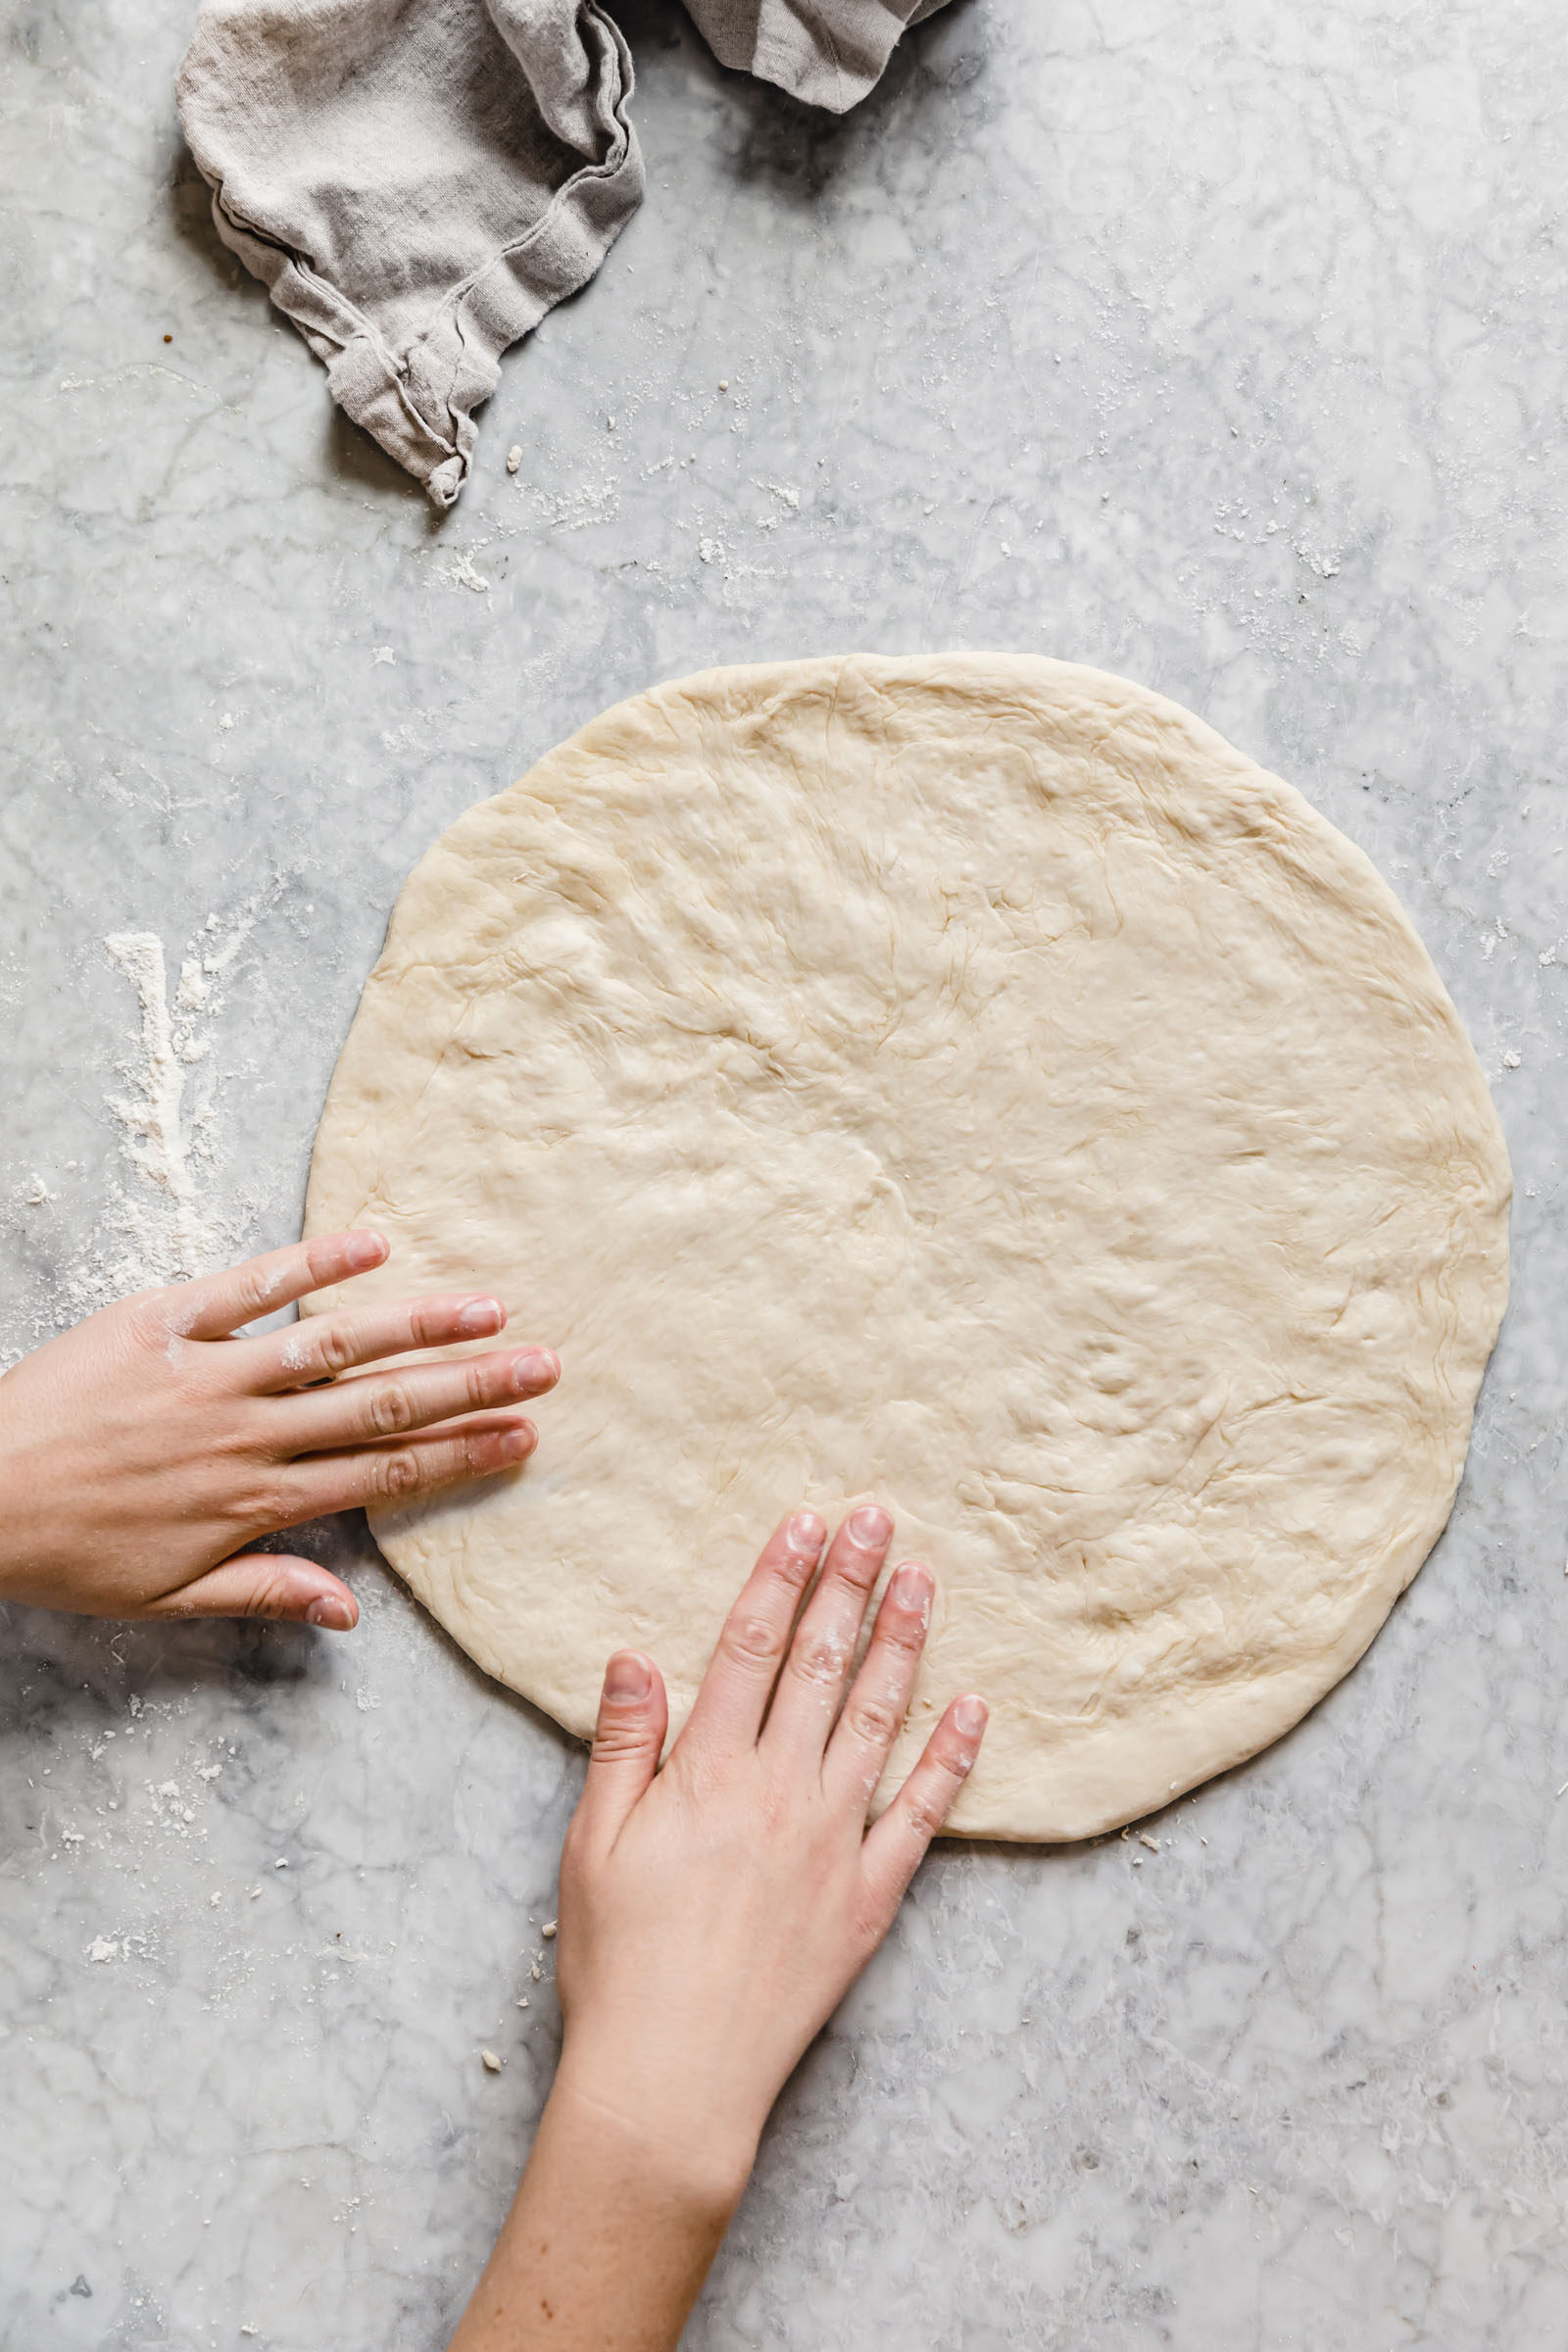 stretch out pizza dough to a 12 inch round